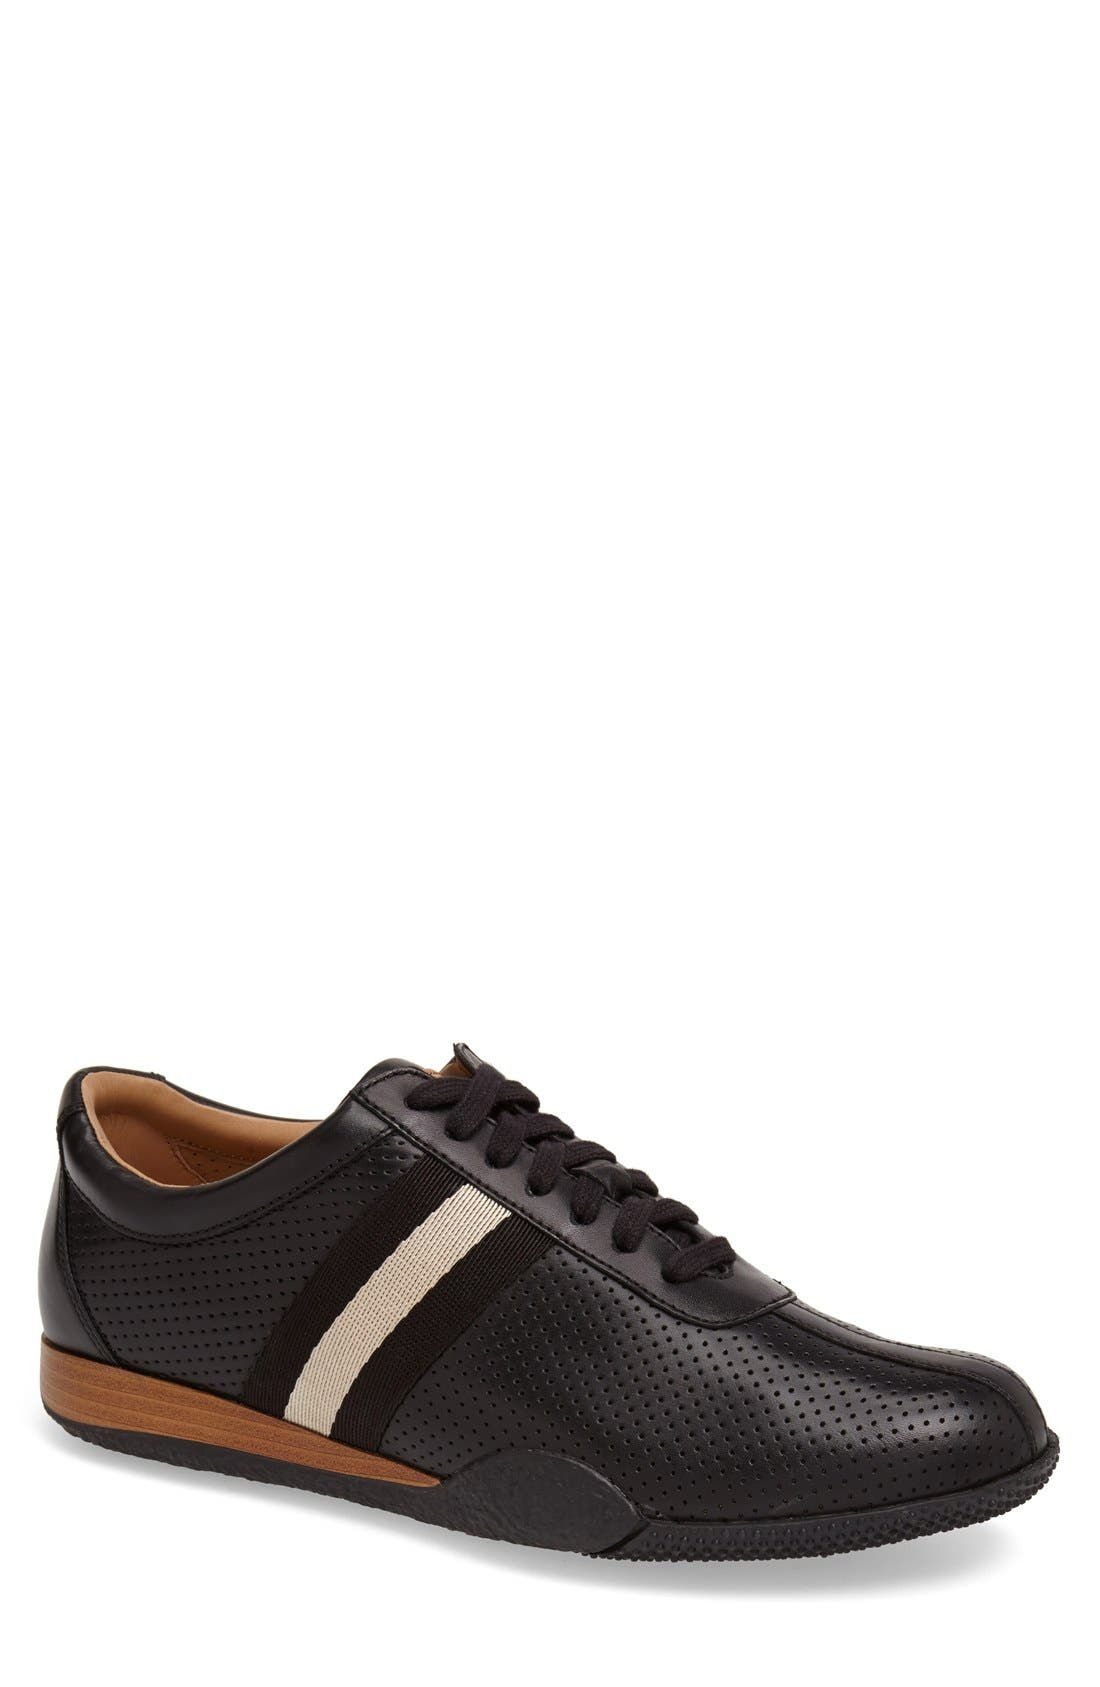 'Frenz' Perforated Sneaker,                             Main thumbnail 1, color,                             001